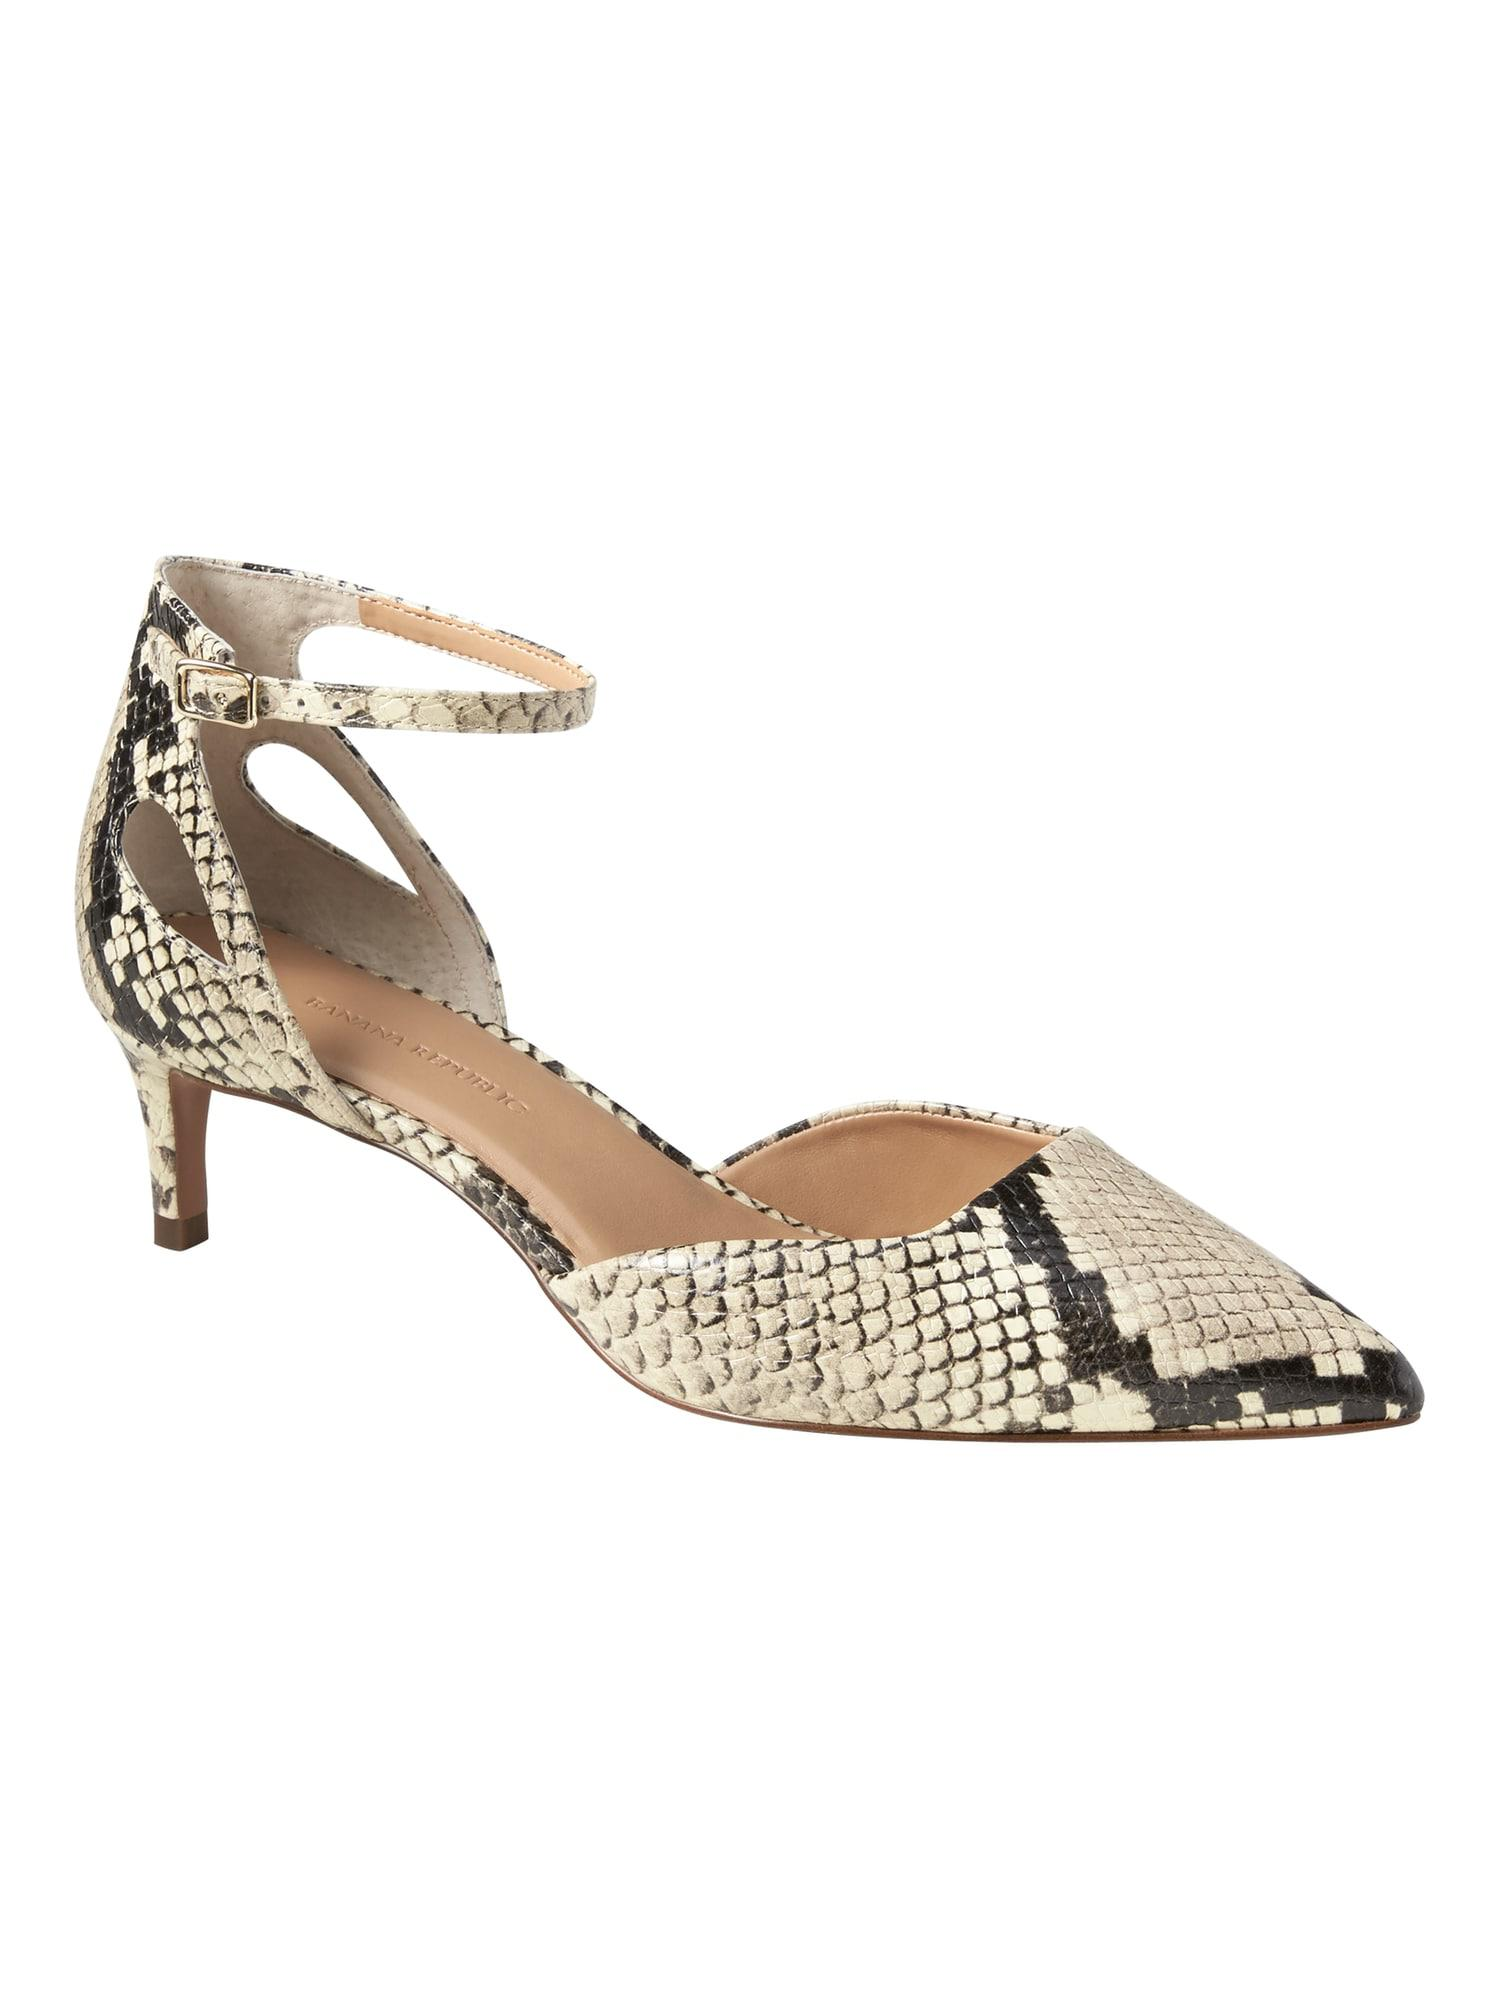 46263adf1188 Lyst - Banana Republic Side Cutout Kitten Heel in Metallic